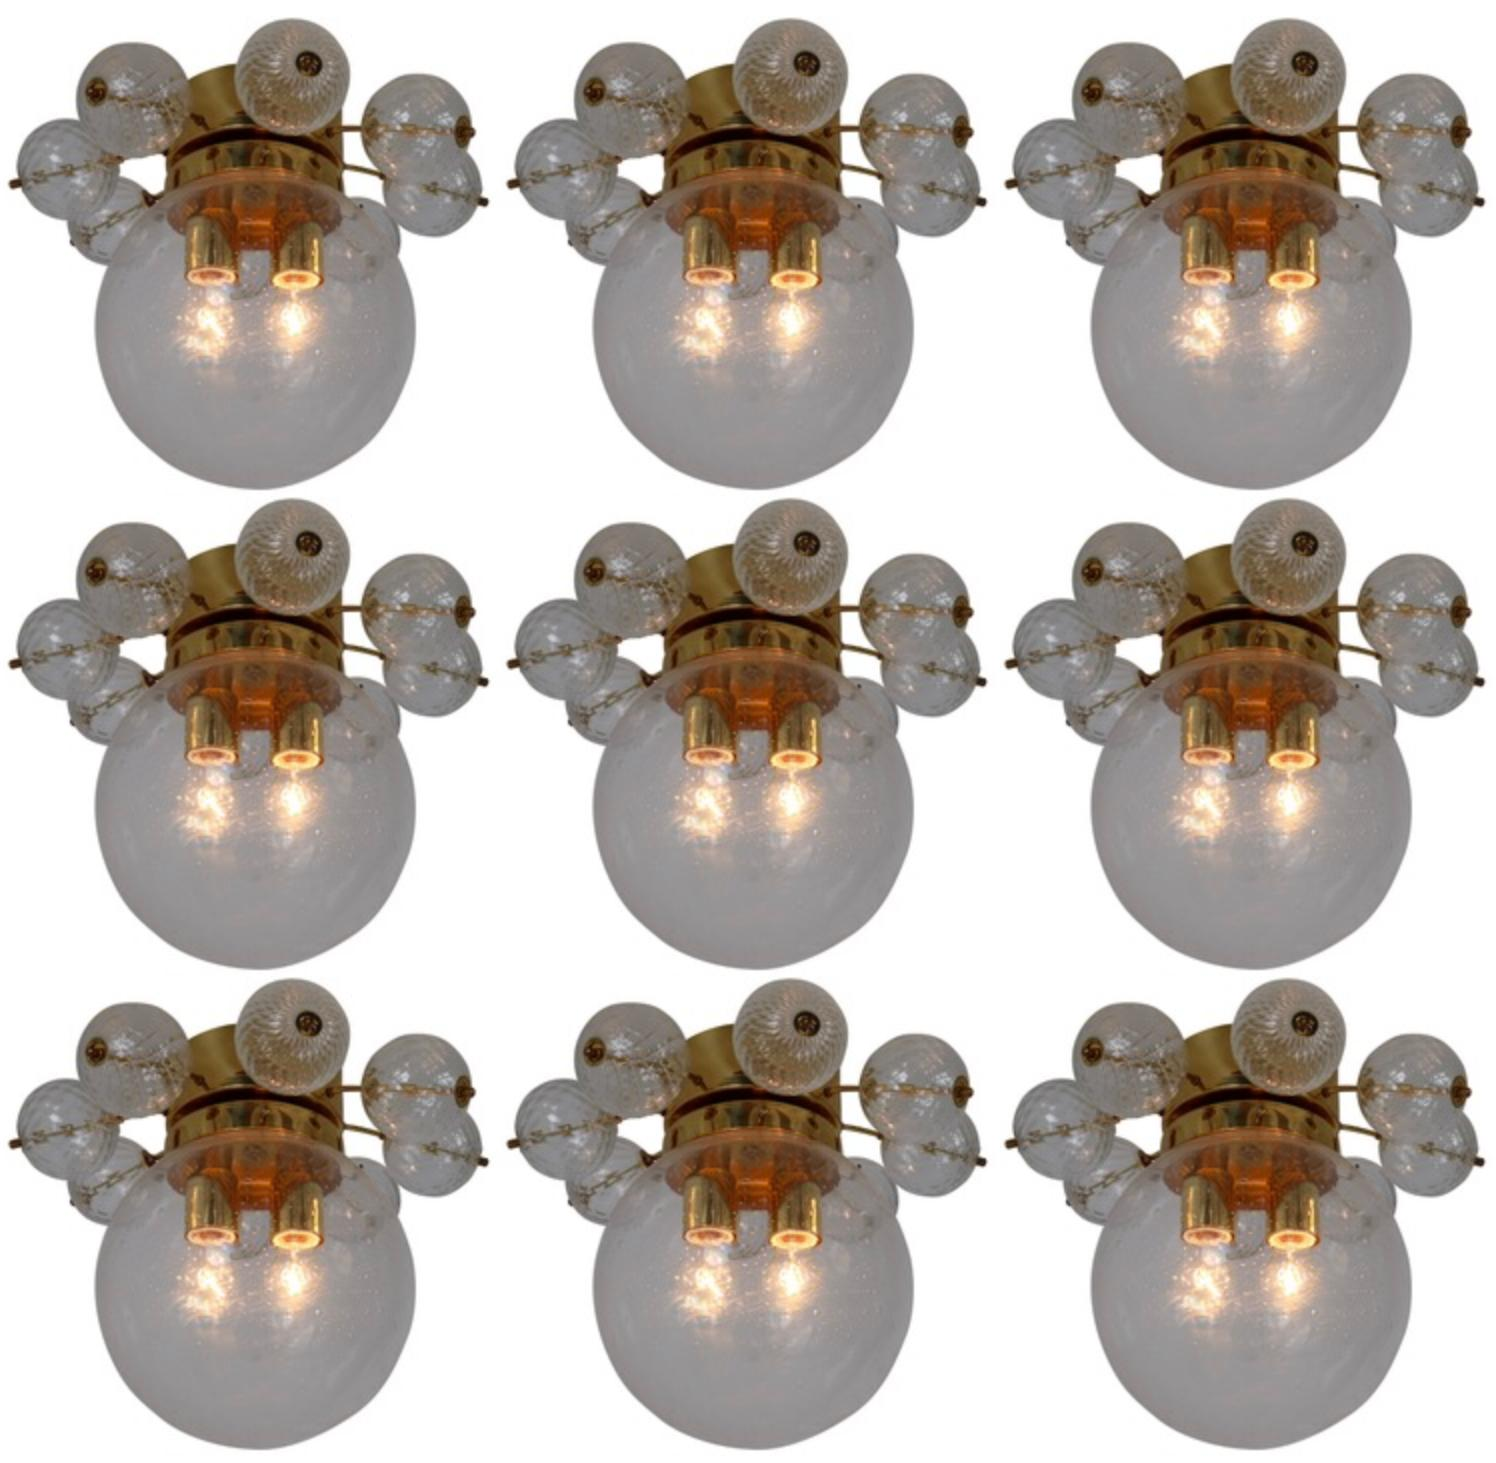 Large Set Midcentury Brass Ceiling Lamp-Chandeliers with Hand Blown Glass, 1960s